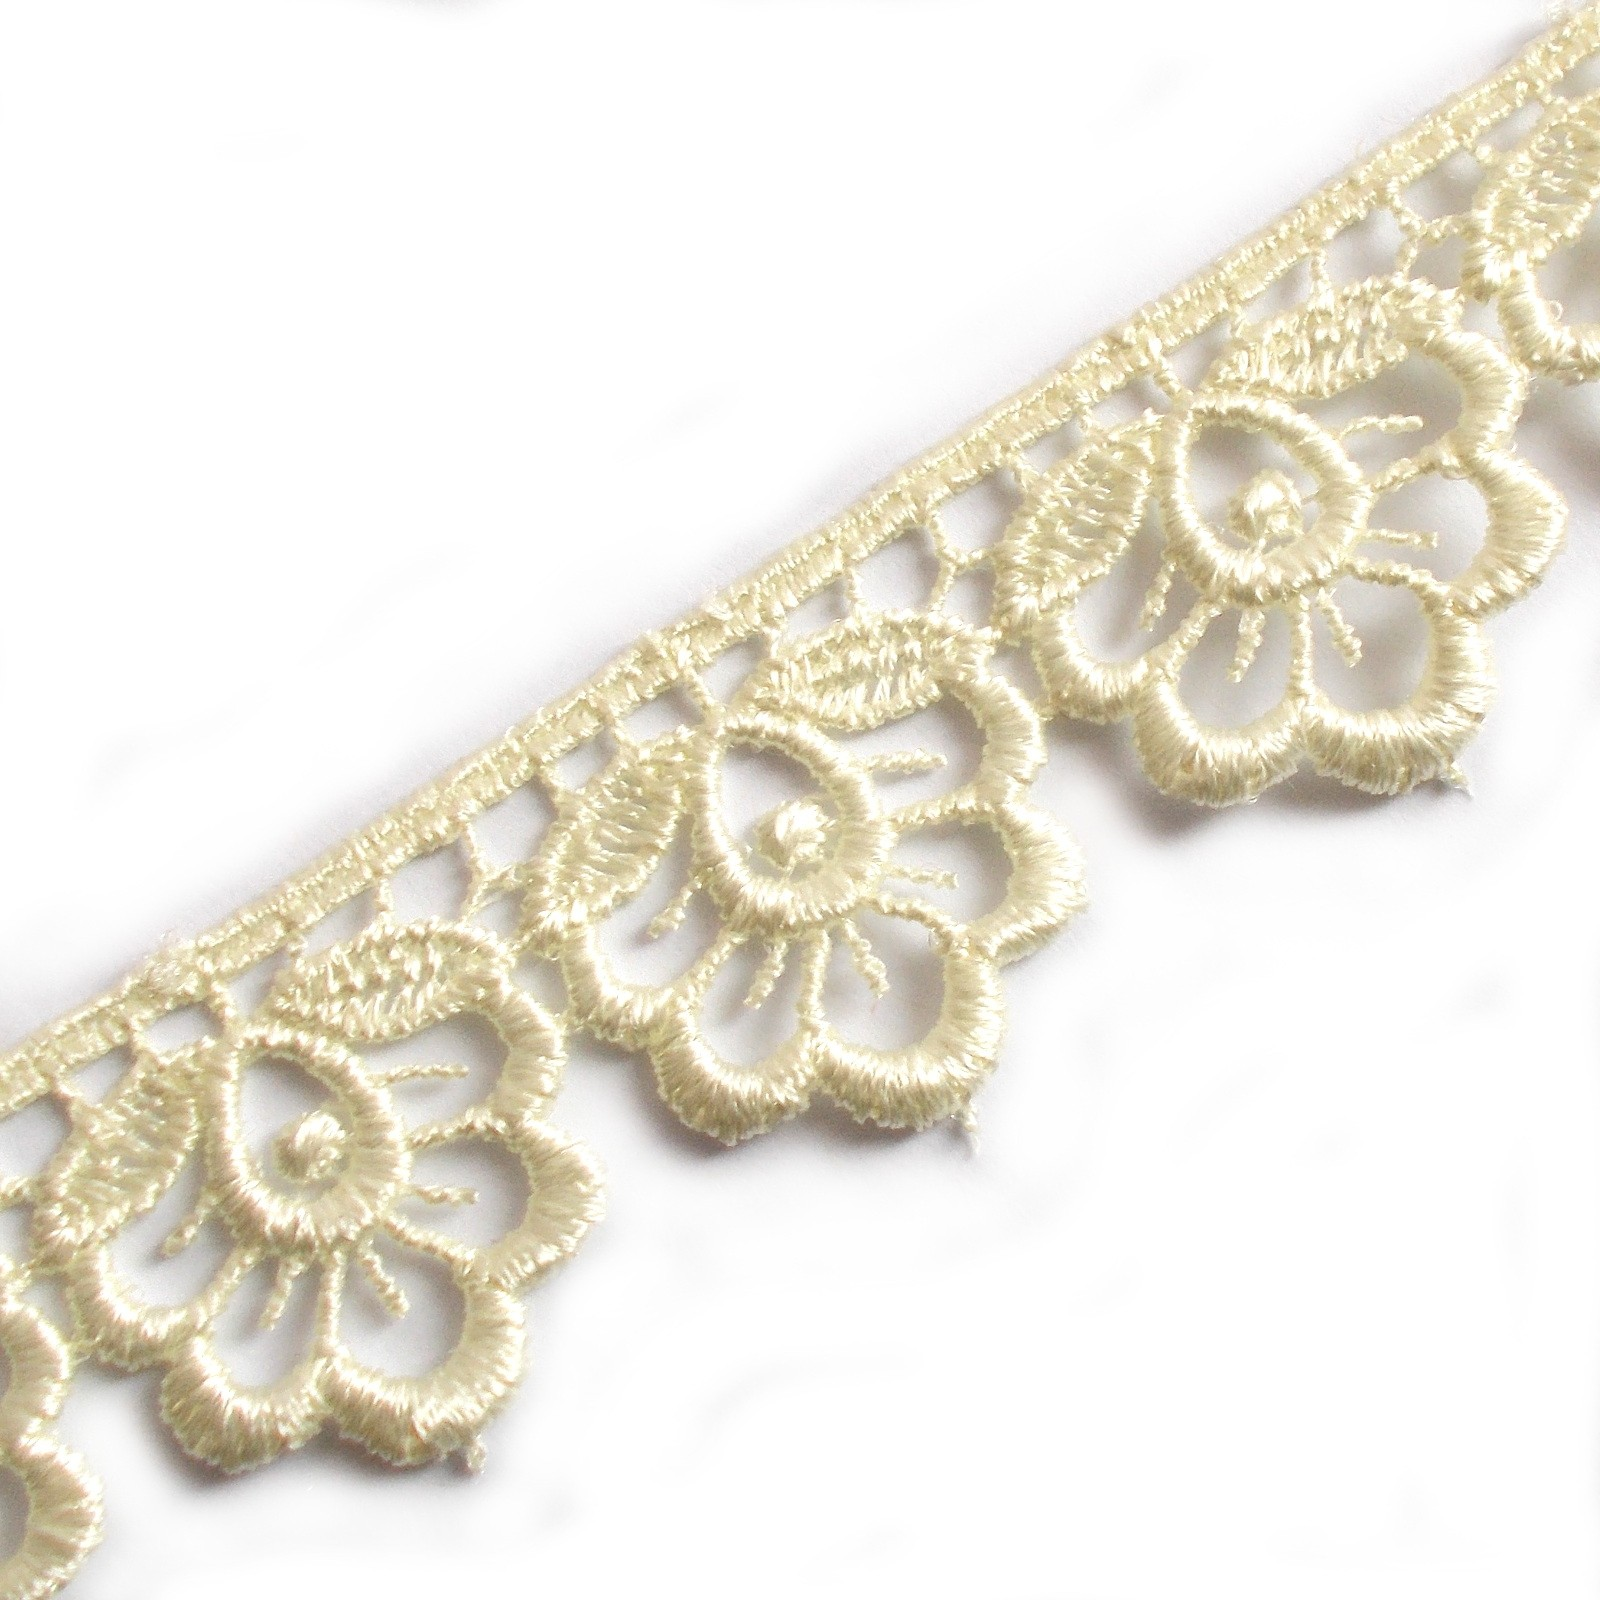 Scalloped Guipure Lace 27mm wide Cream 3 metre length